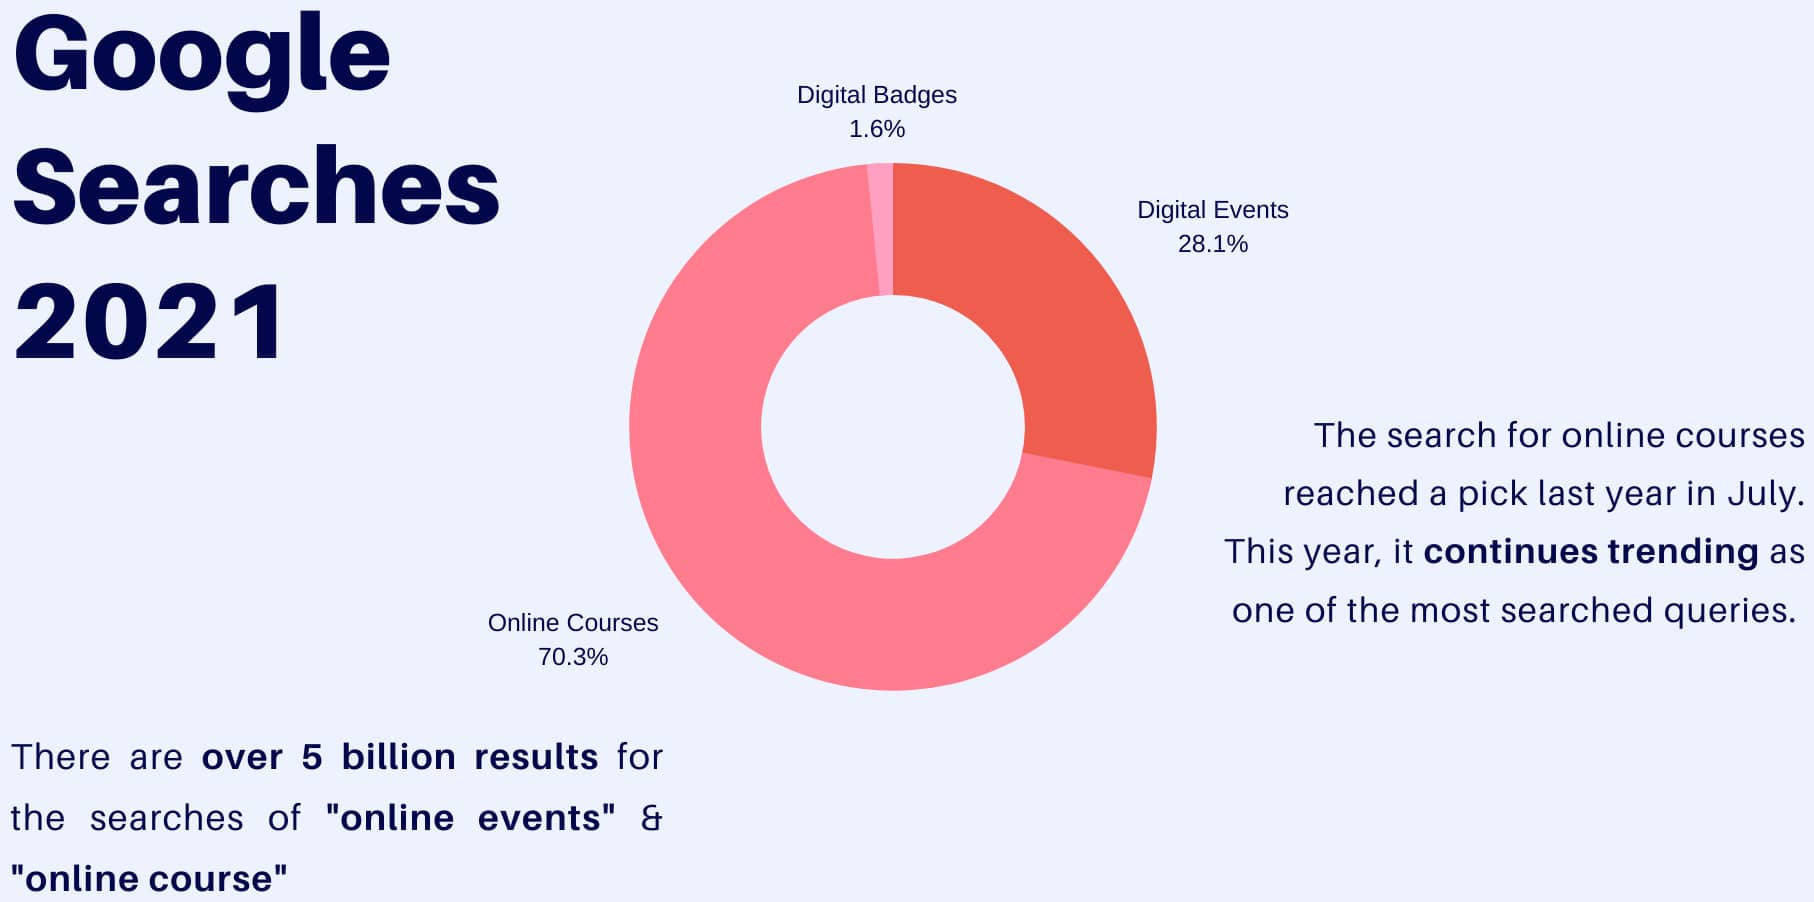 google searches for digital badges, digital events and online courses